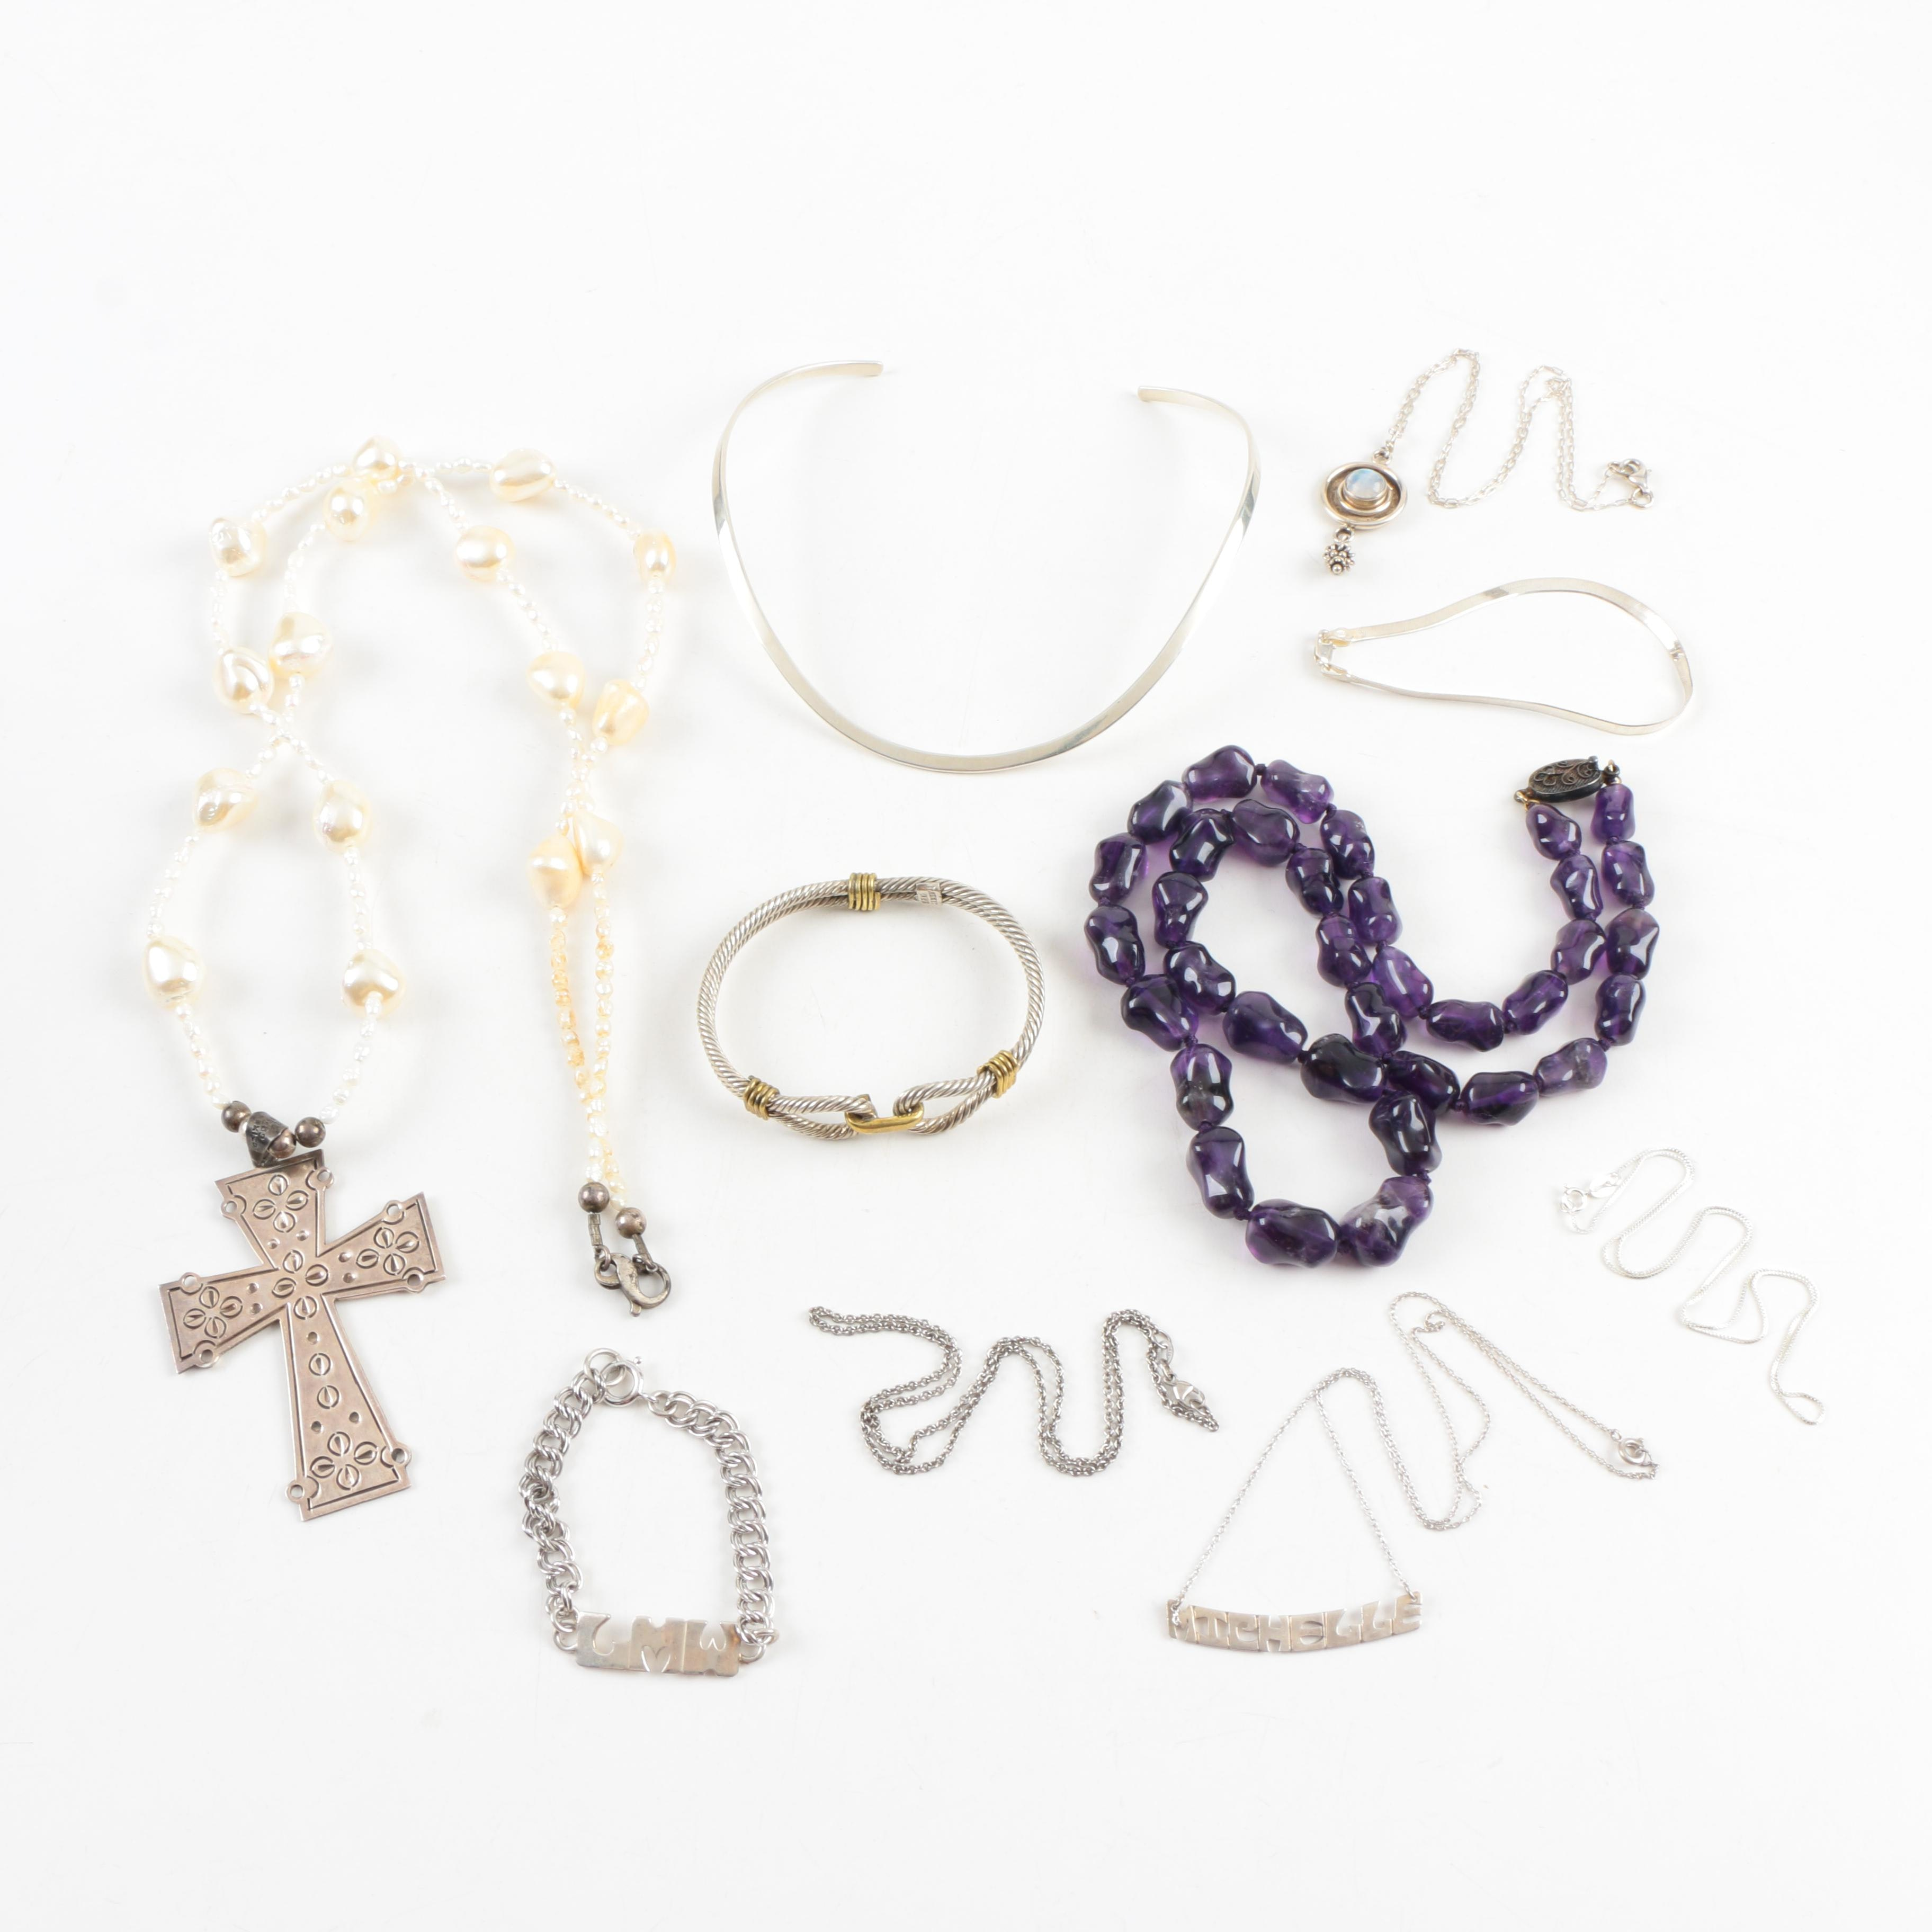 Sterling Silver Jewelry With Gemstones, Pearls, Leonore Doskow, and More